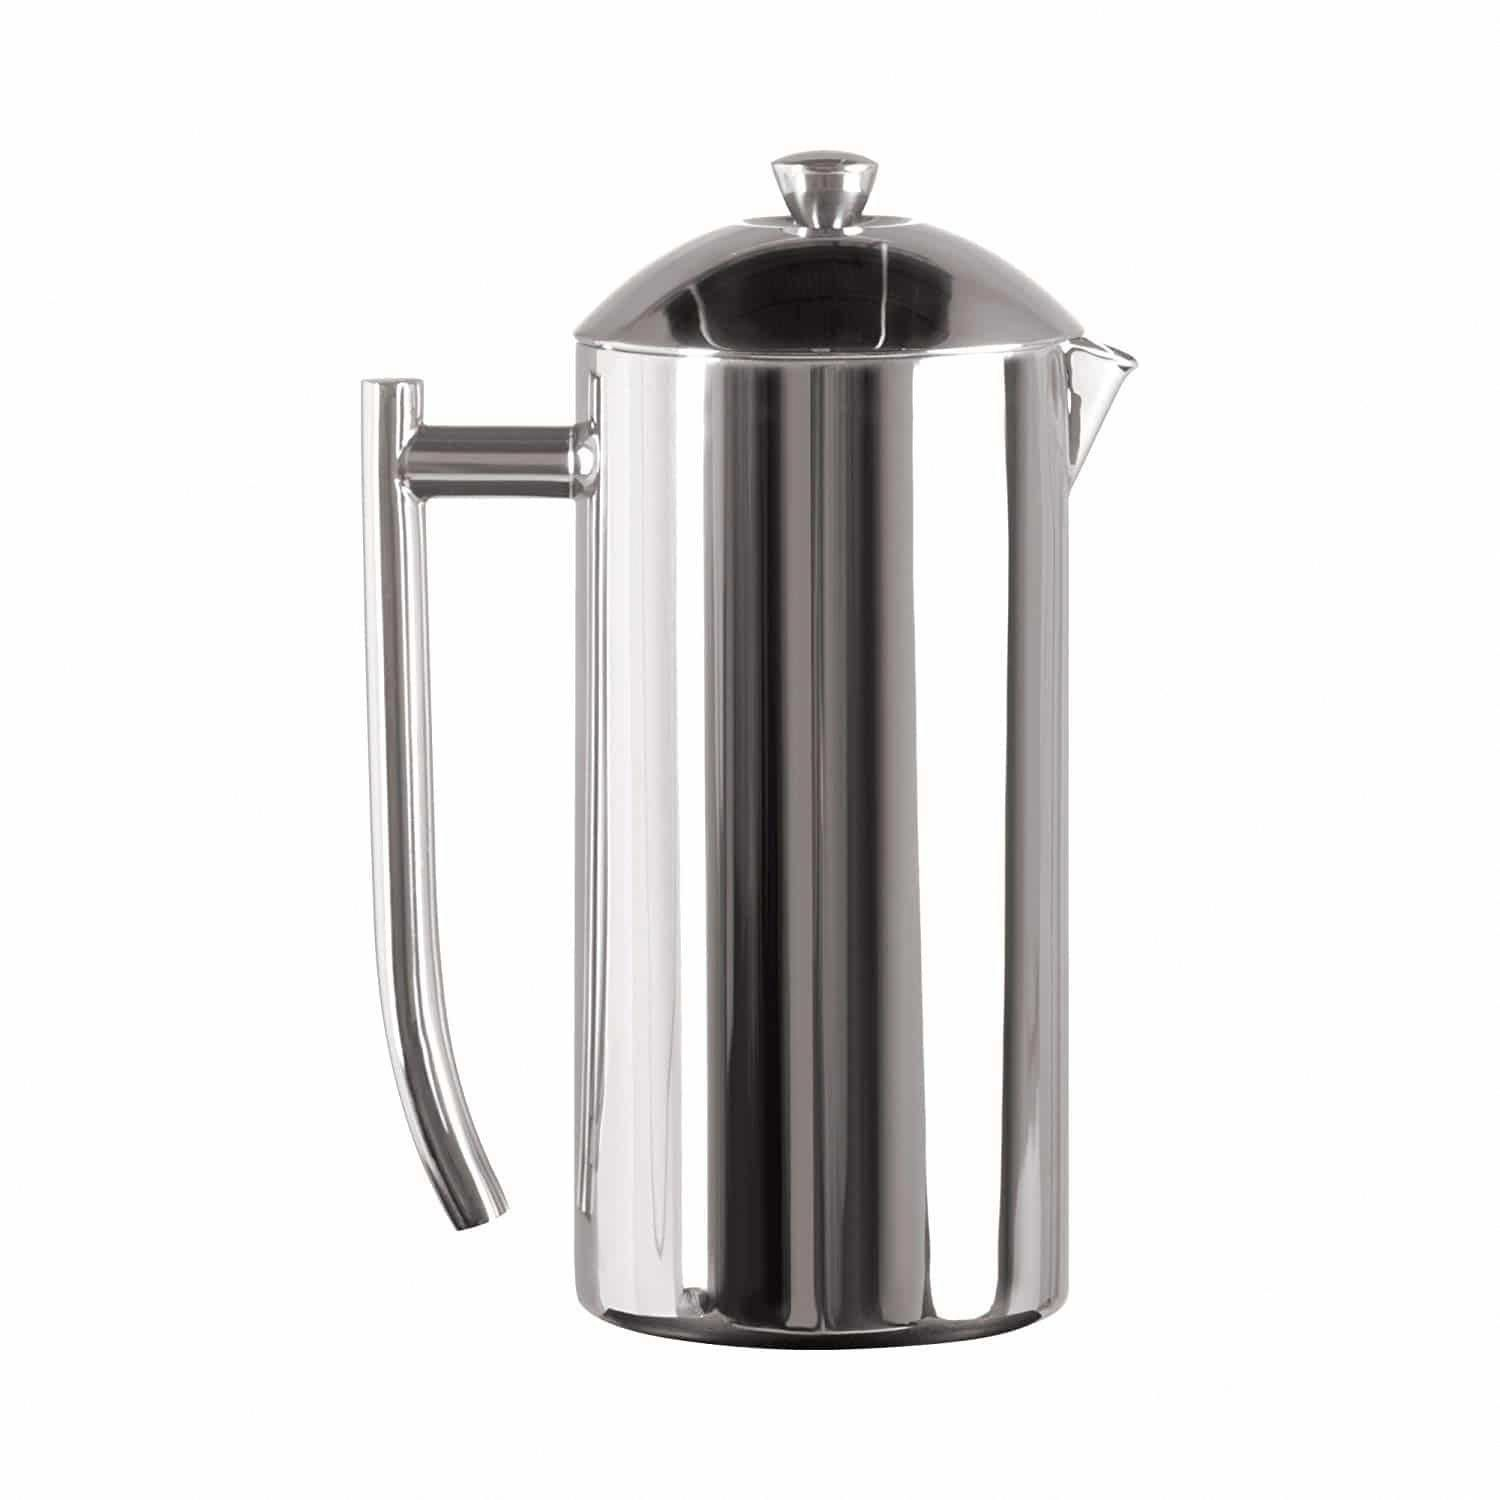 Frieling double wall stainless steel coffee maker ounce